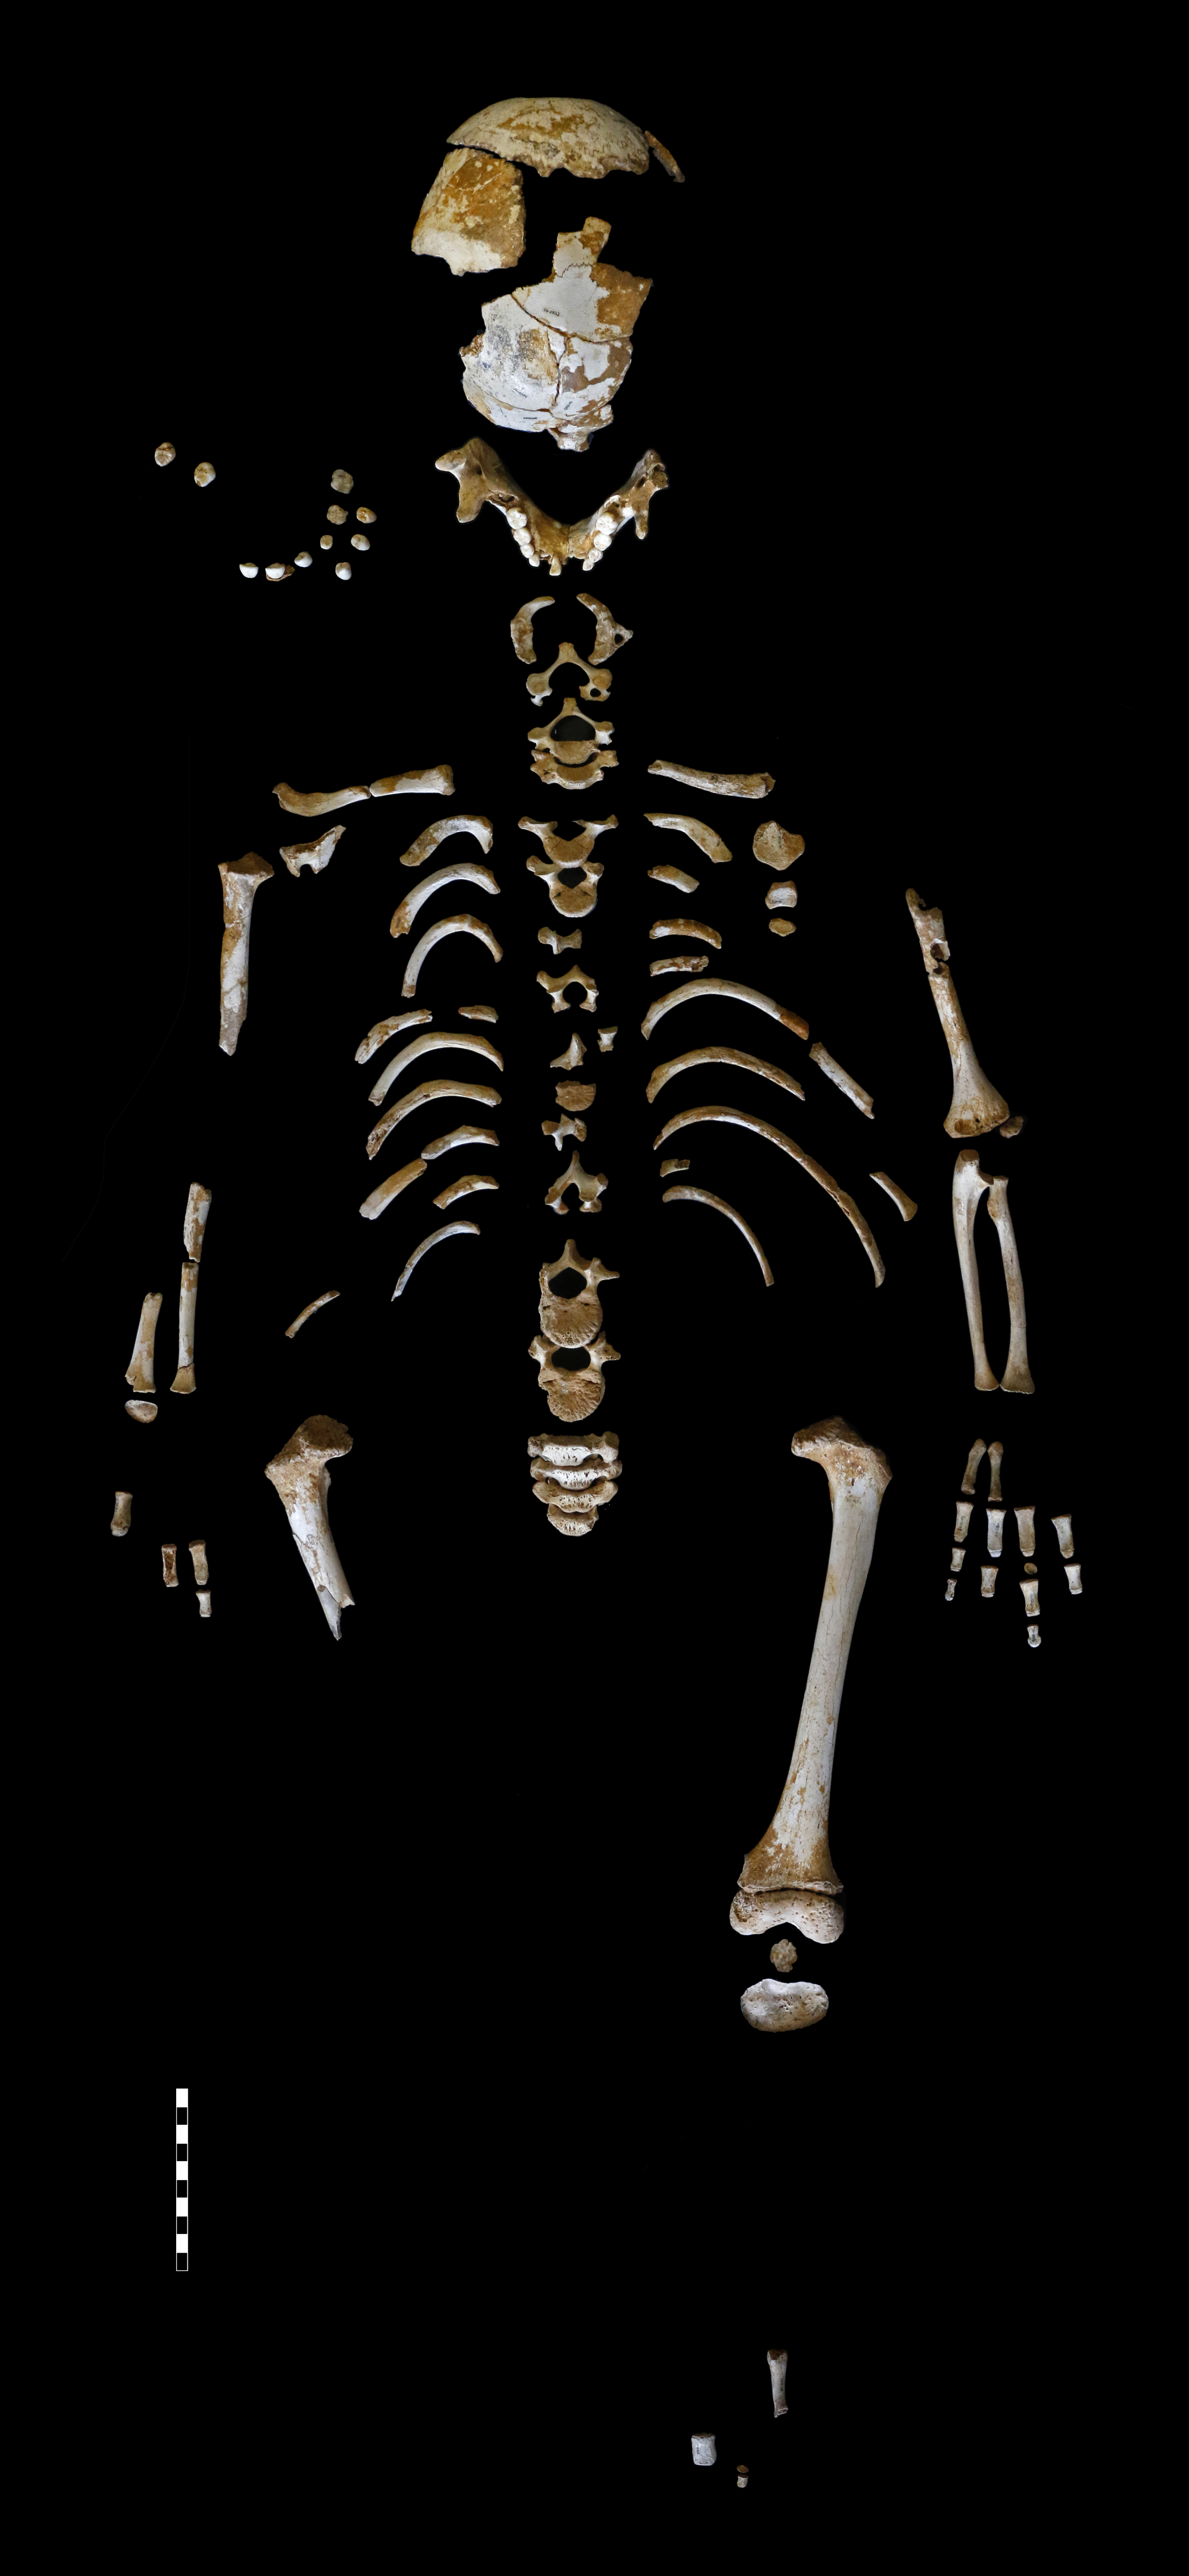 Neandertal Skeleton Reveals the Growth Pattern of Our Extinct Cousins